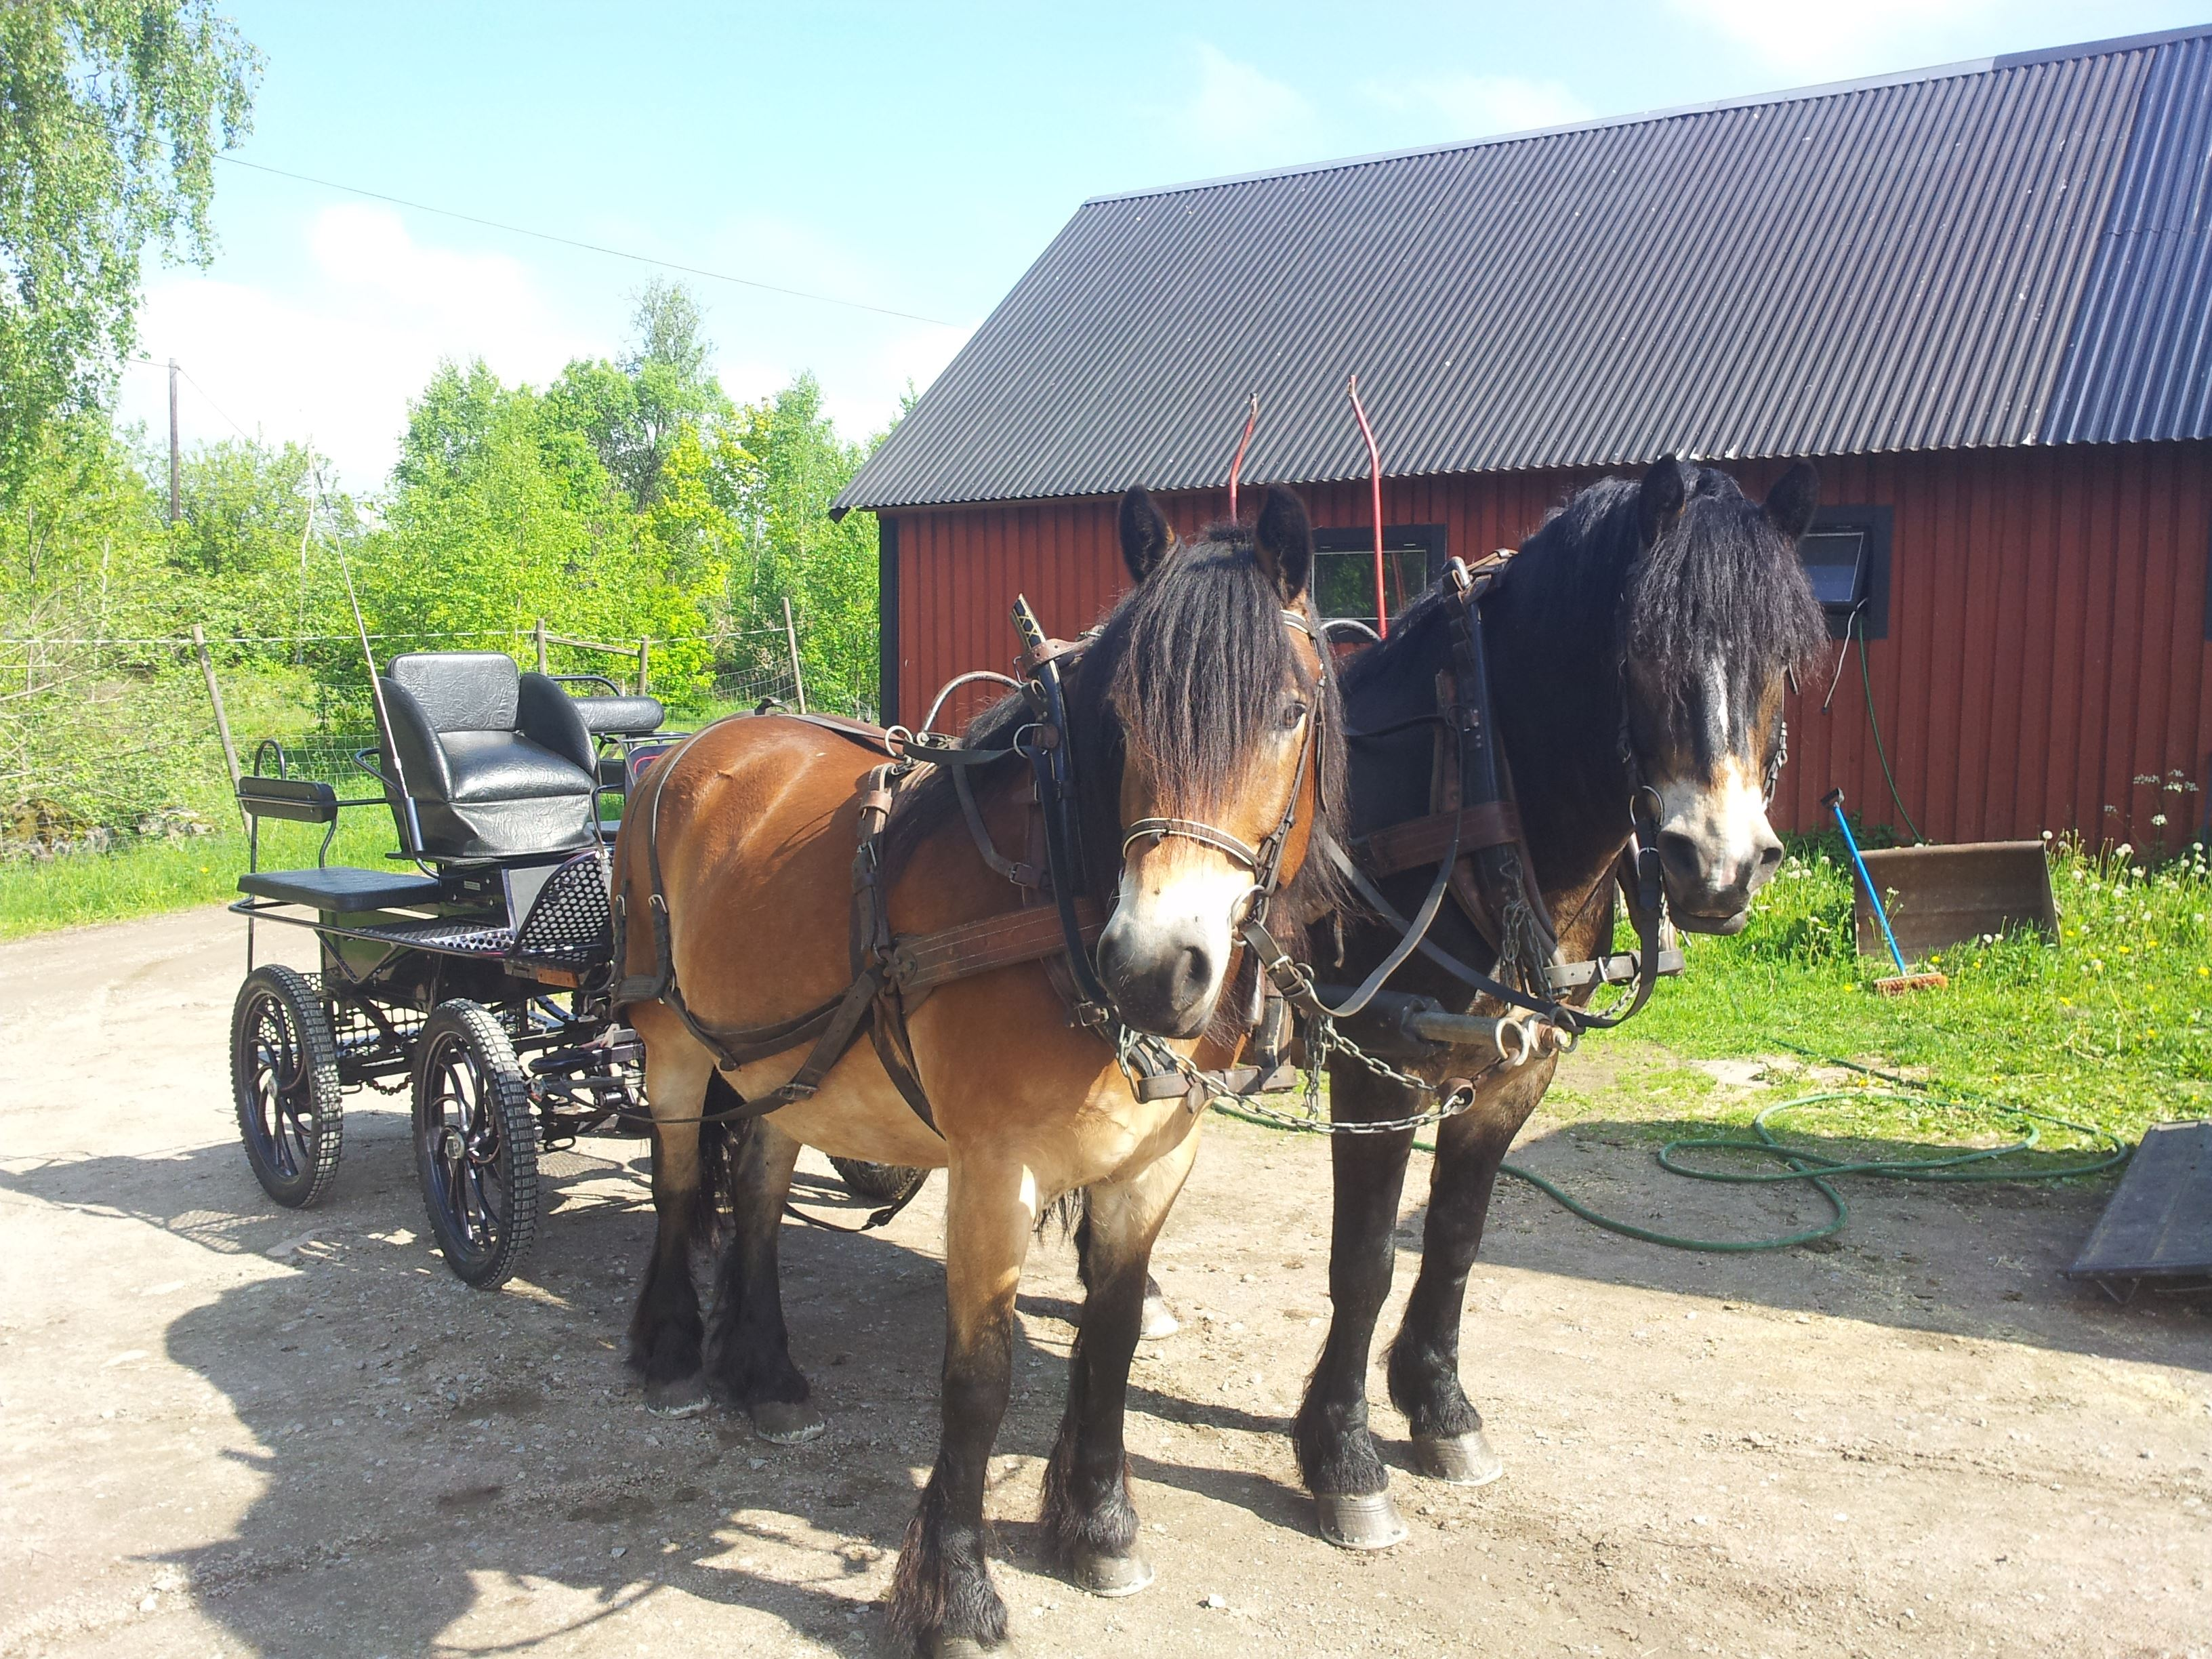 Horse and carriage - Stall Labbabacken